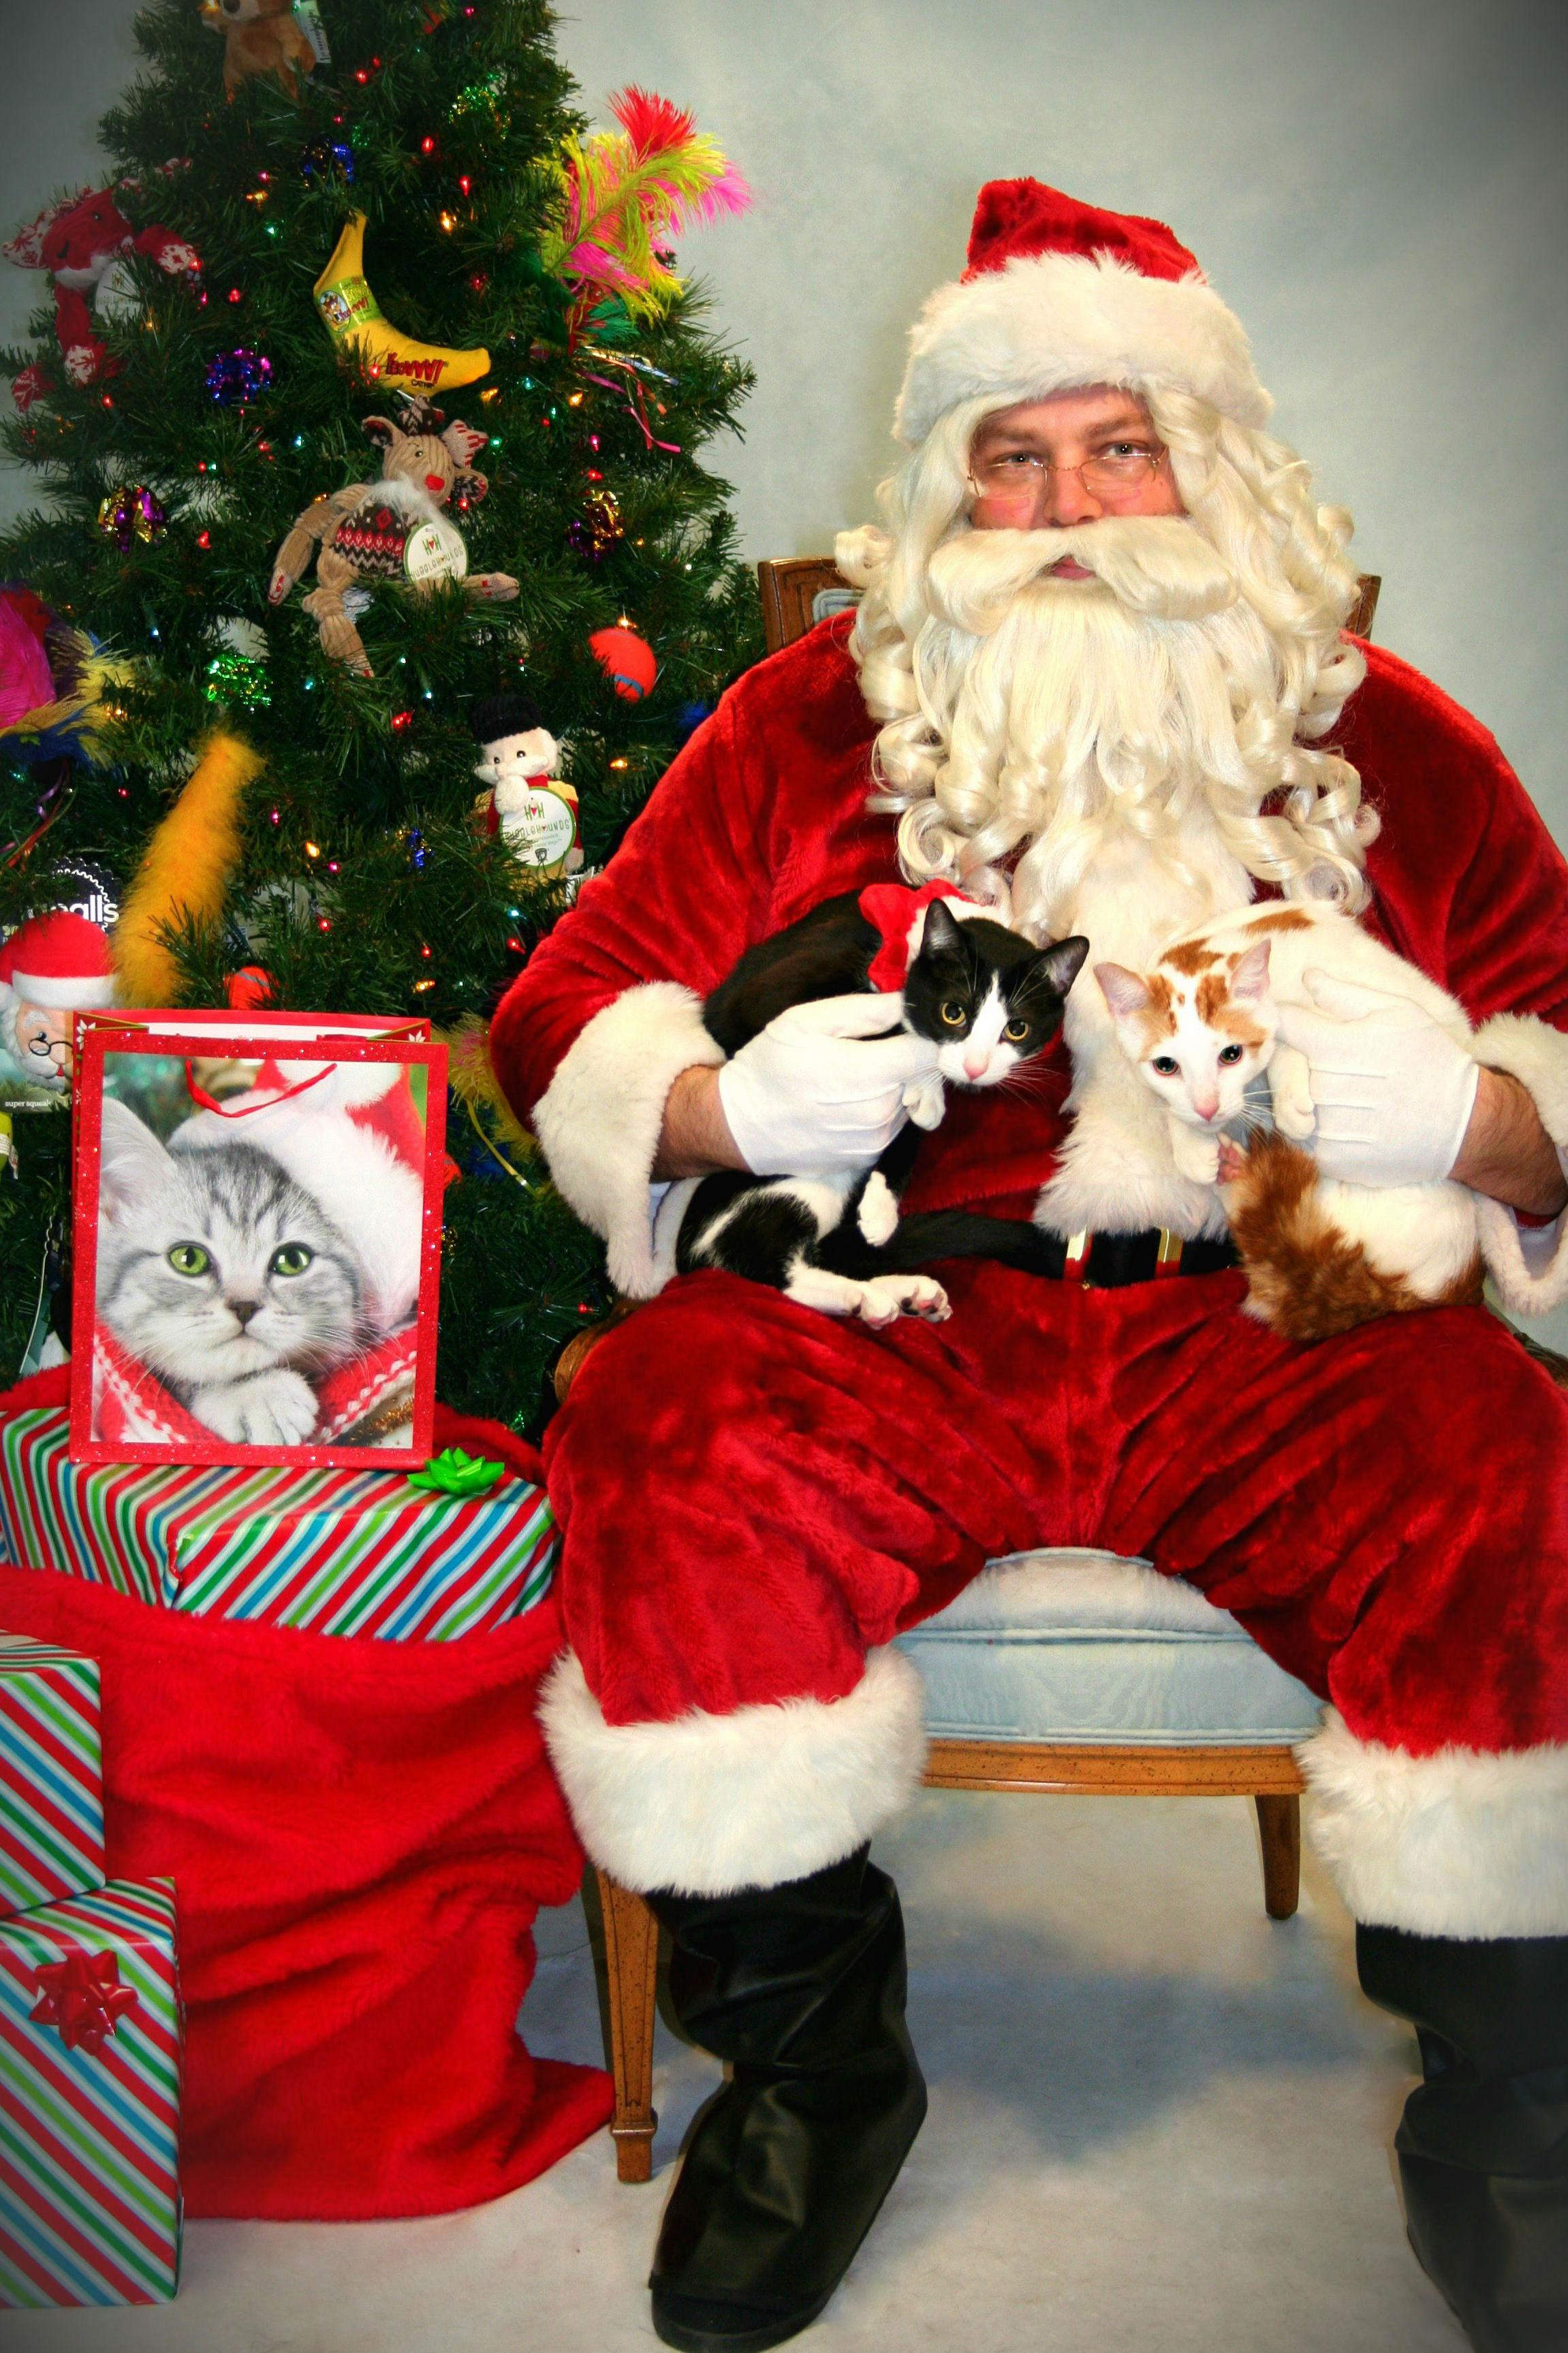 Took my two cats to meet santa. everyone was thrilled.